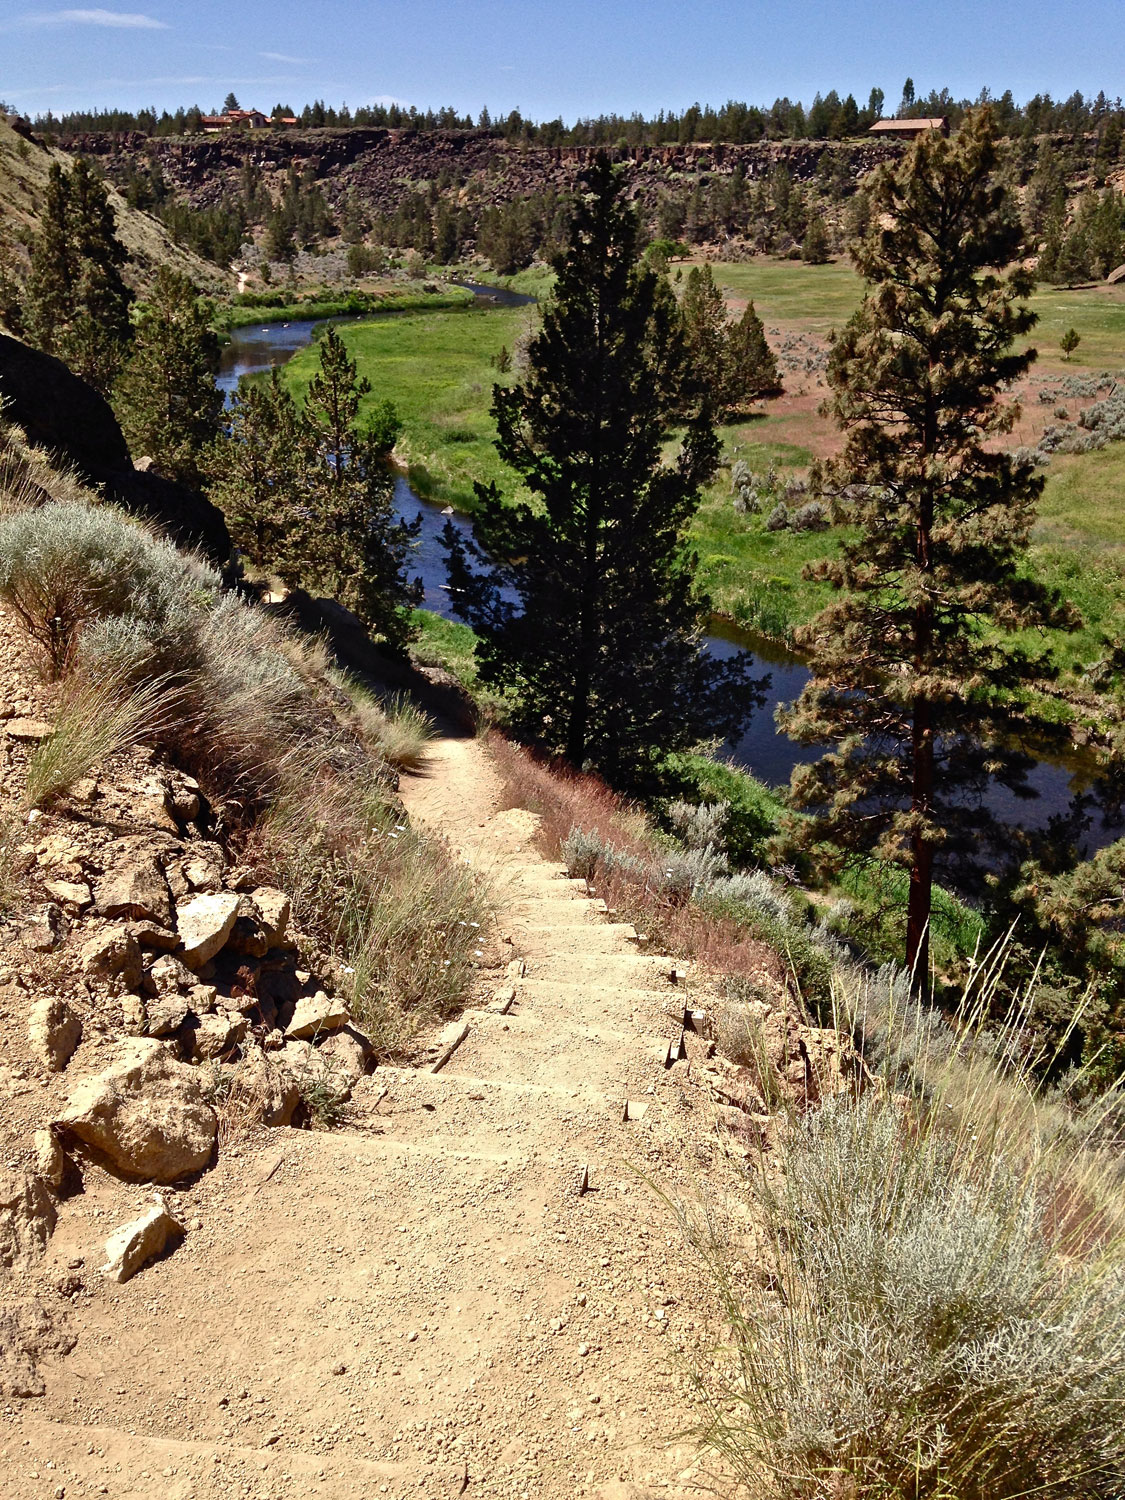 A set of stairs on the Mesa Verde Trail at Smith Rock State Park has been added to prevent more erosion.